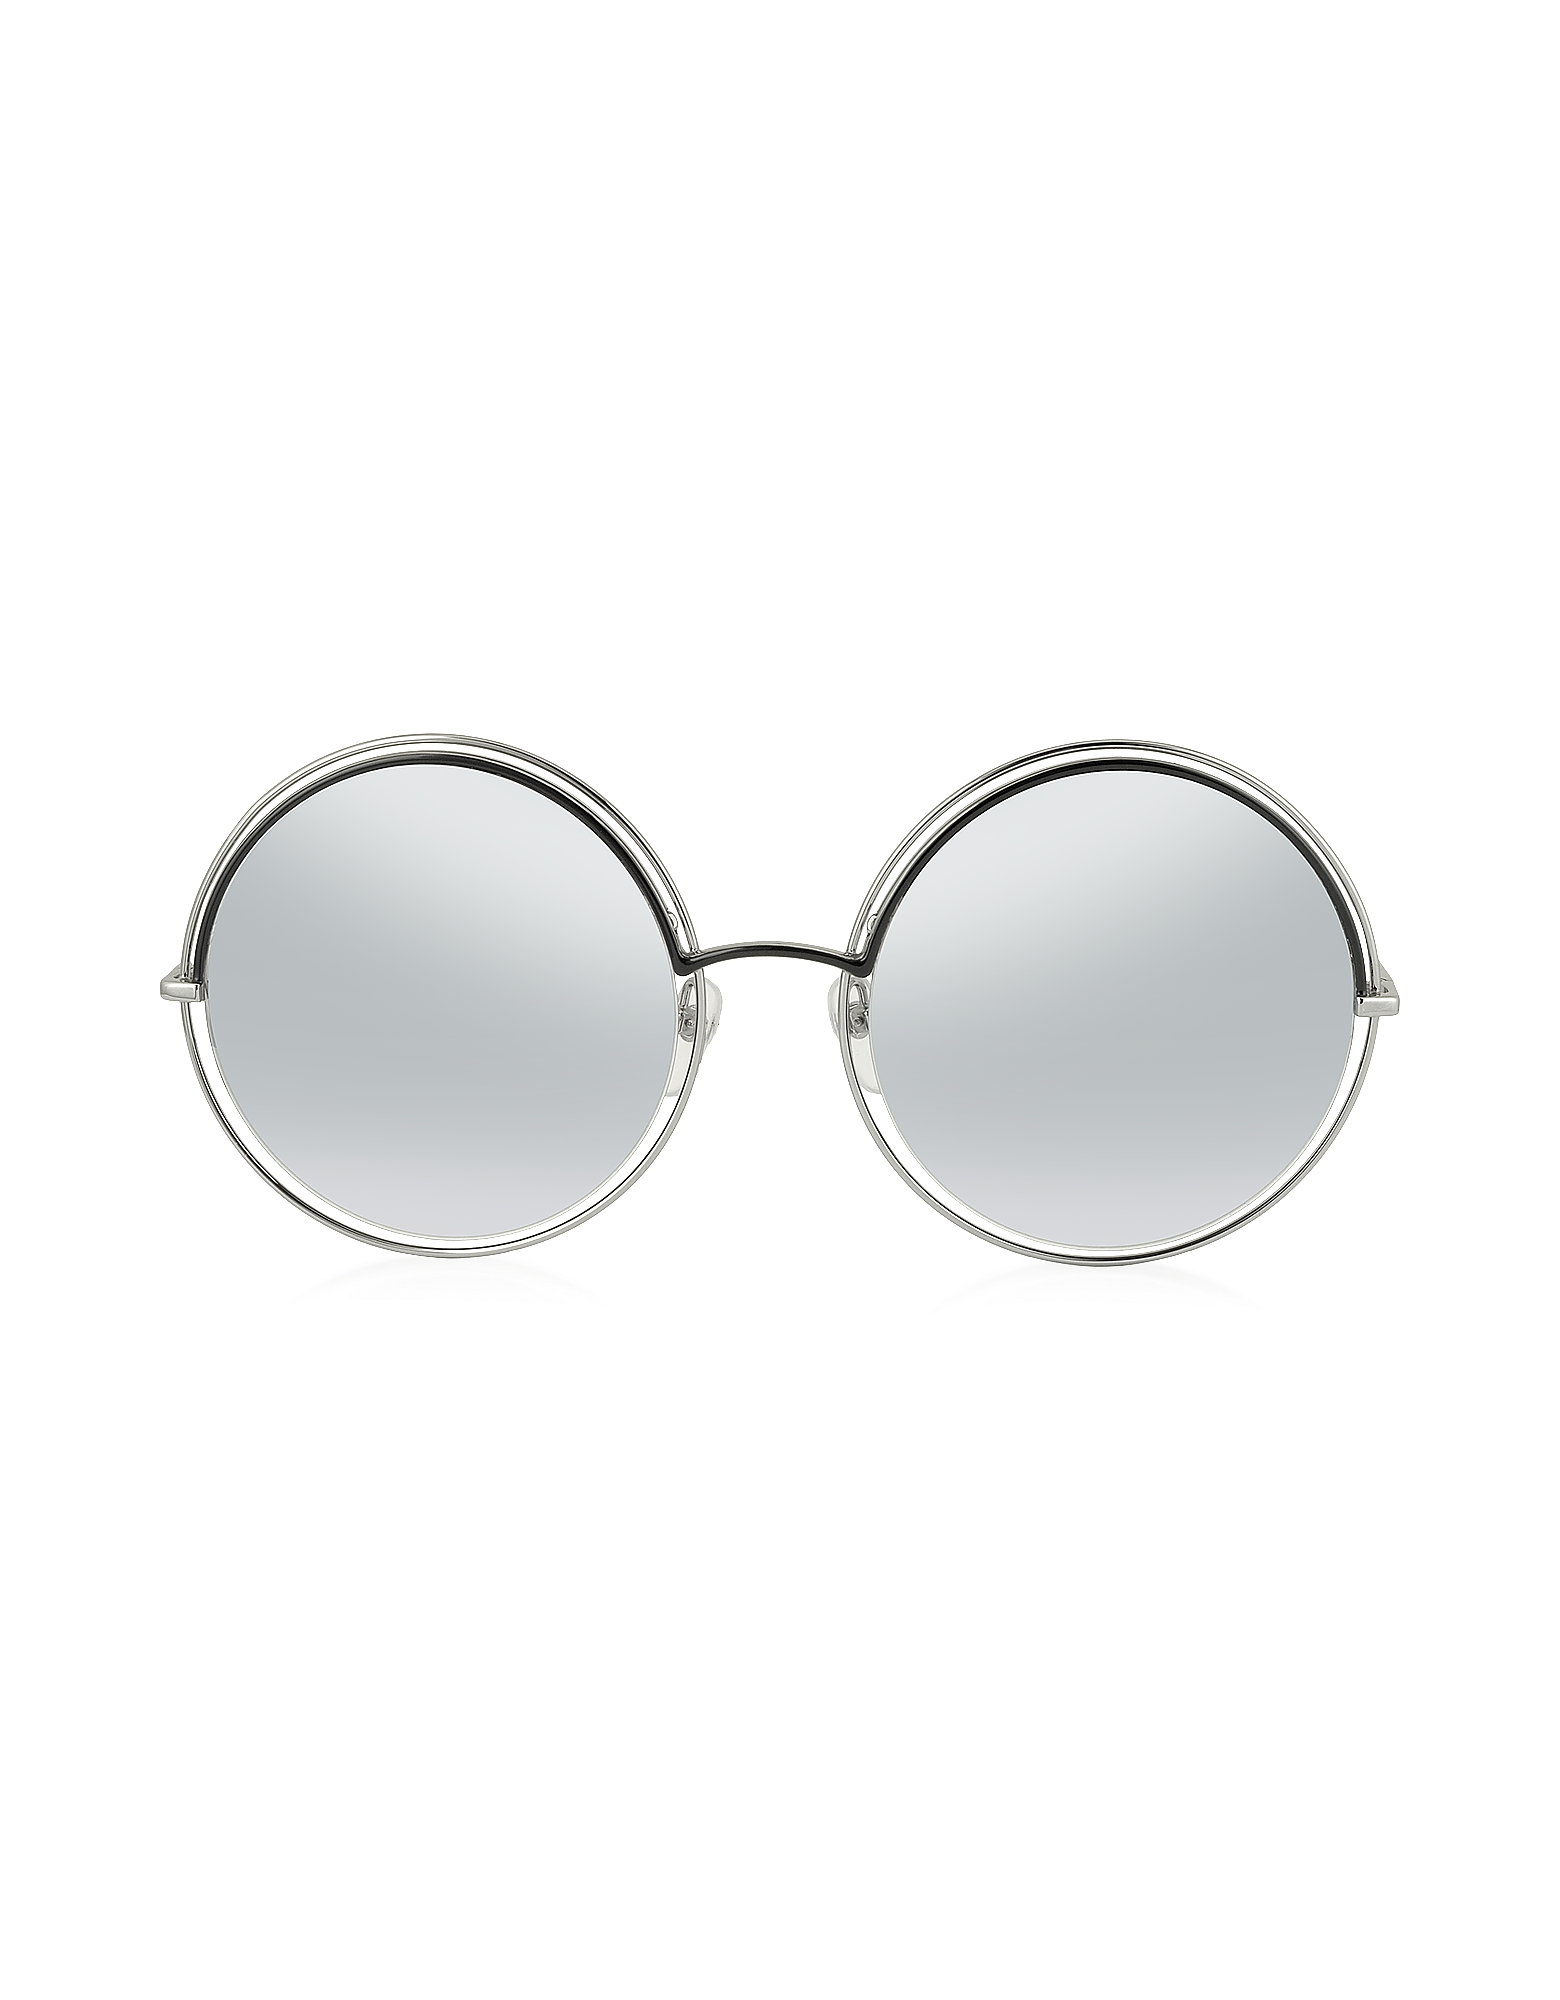 Marc Jacobs Sunglasses, MARC 11/S Metal & Acetate Round Oversized Women's Sunglasses